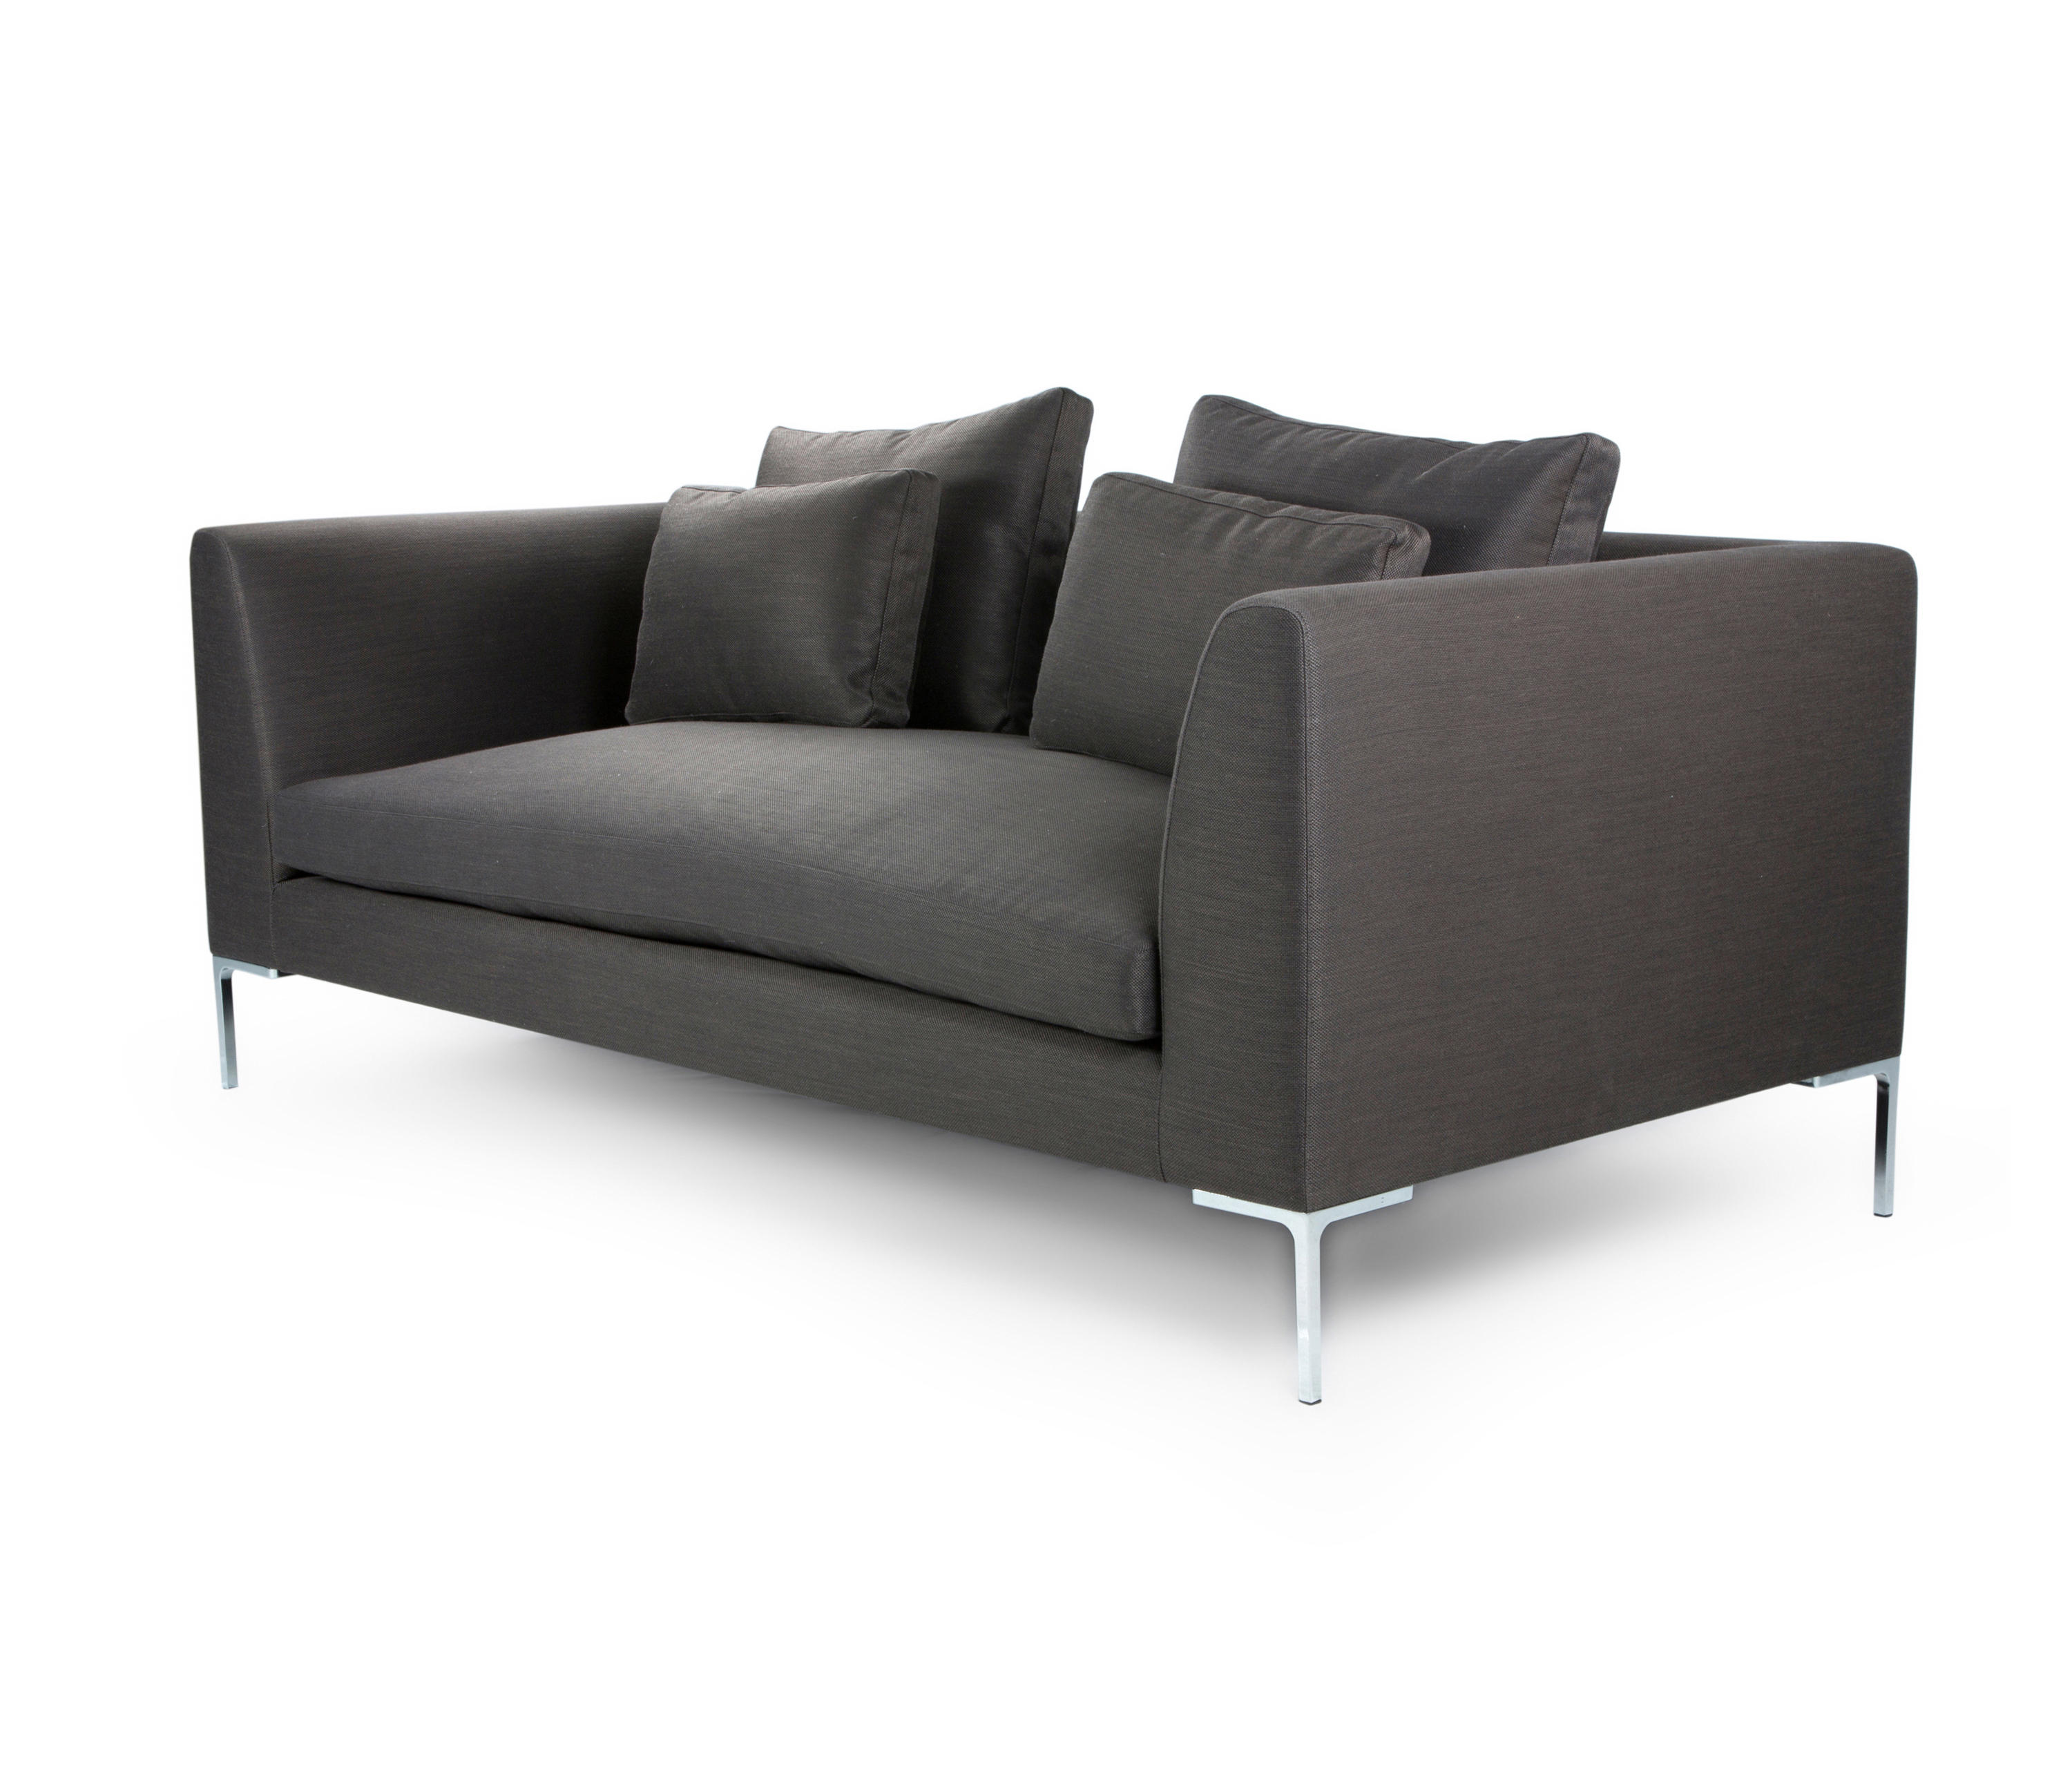 Pleasant Picasso Sofa Sofas From The Sofa Chair Company Ltd Unemploymentrelief Wooden Chair Designs For Living Room Unemploymentrelieforg